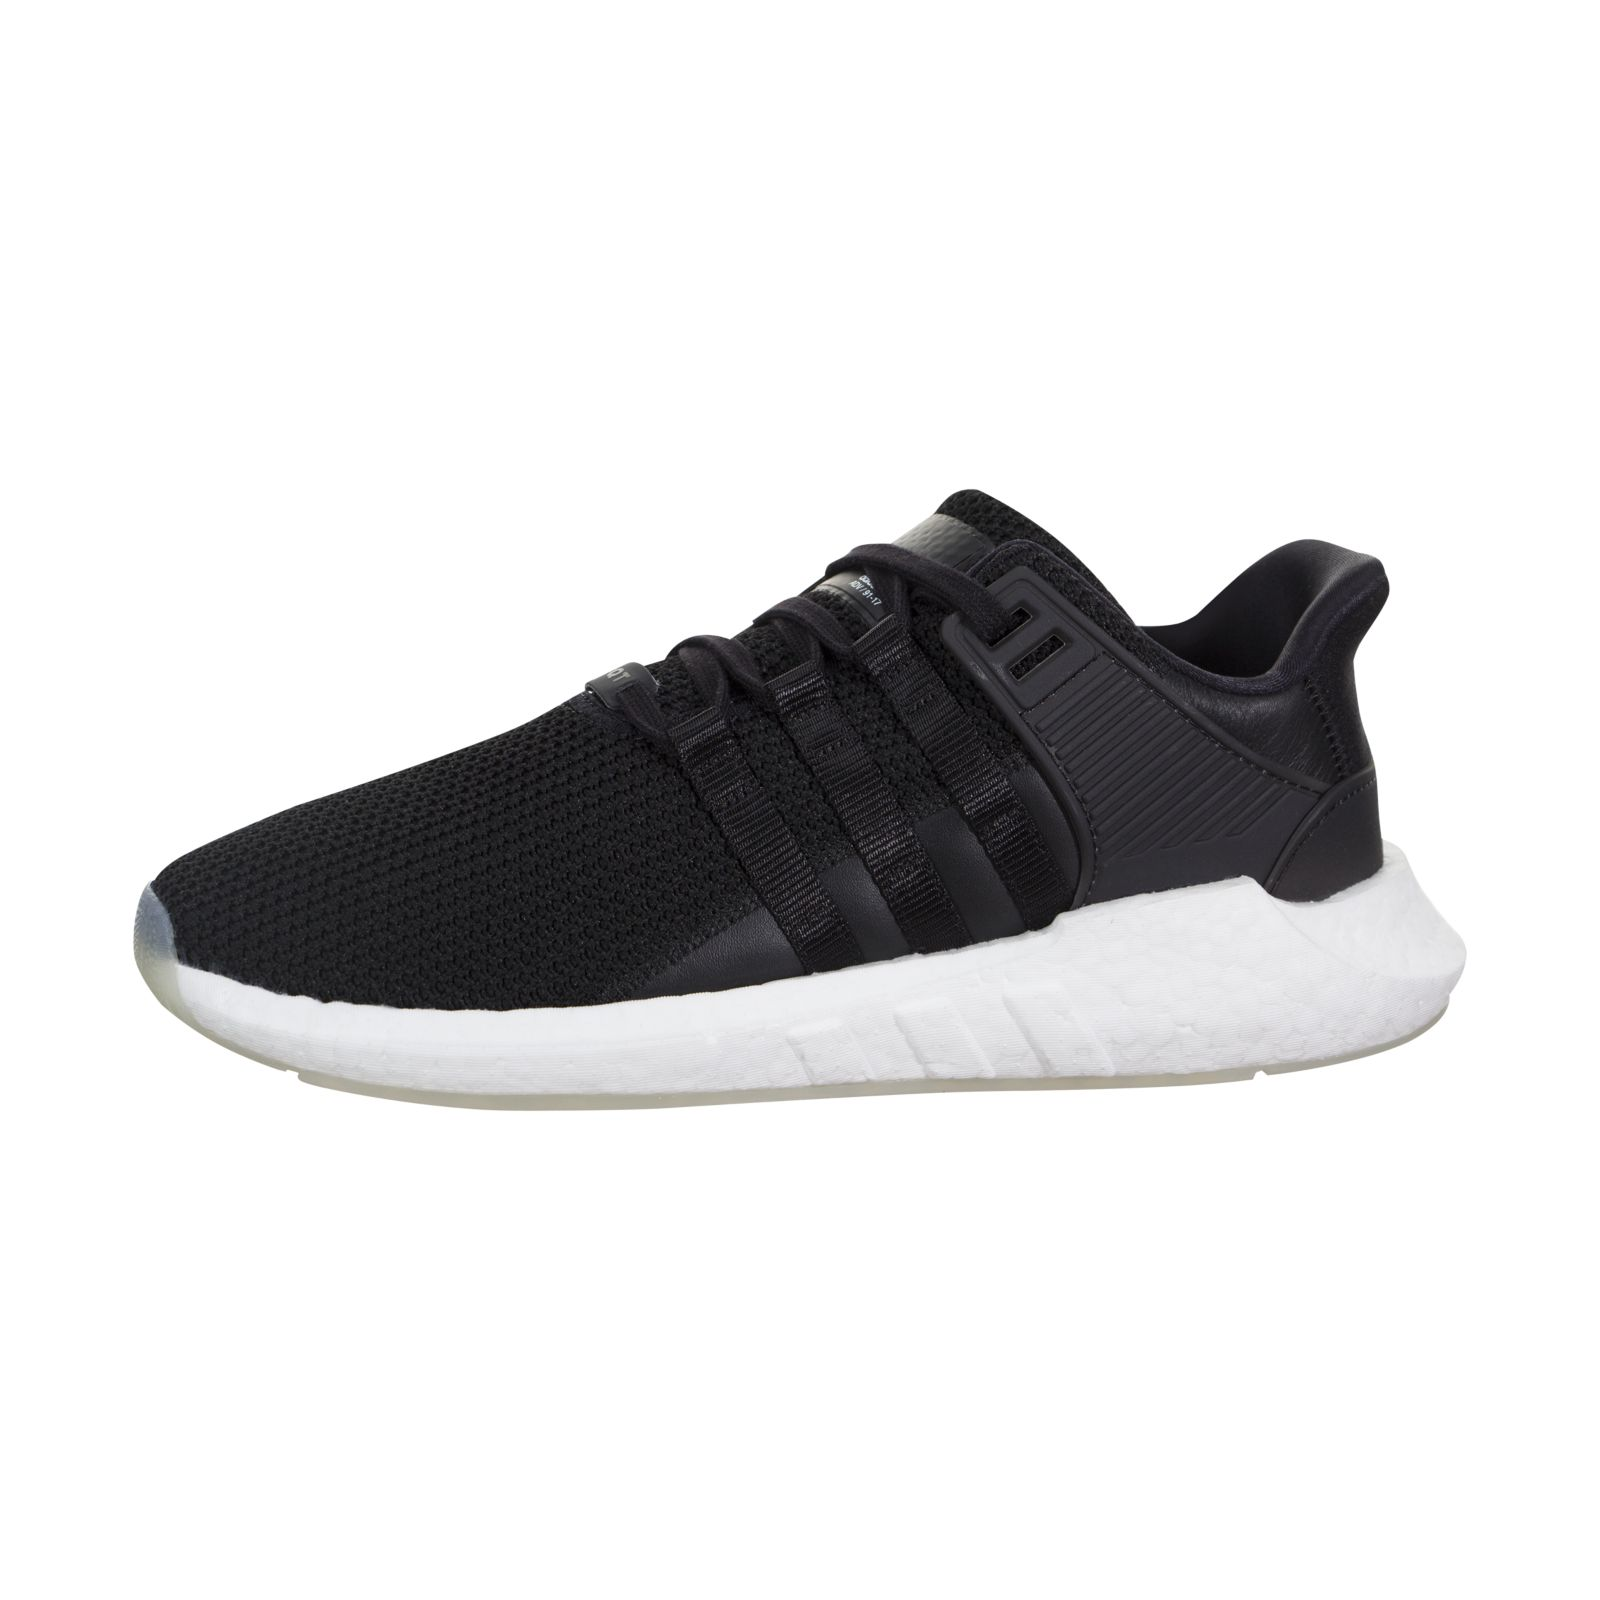 sneakers for cheap b15bc babdc Details about Adidas EQT Support 93/17 bz0585